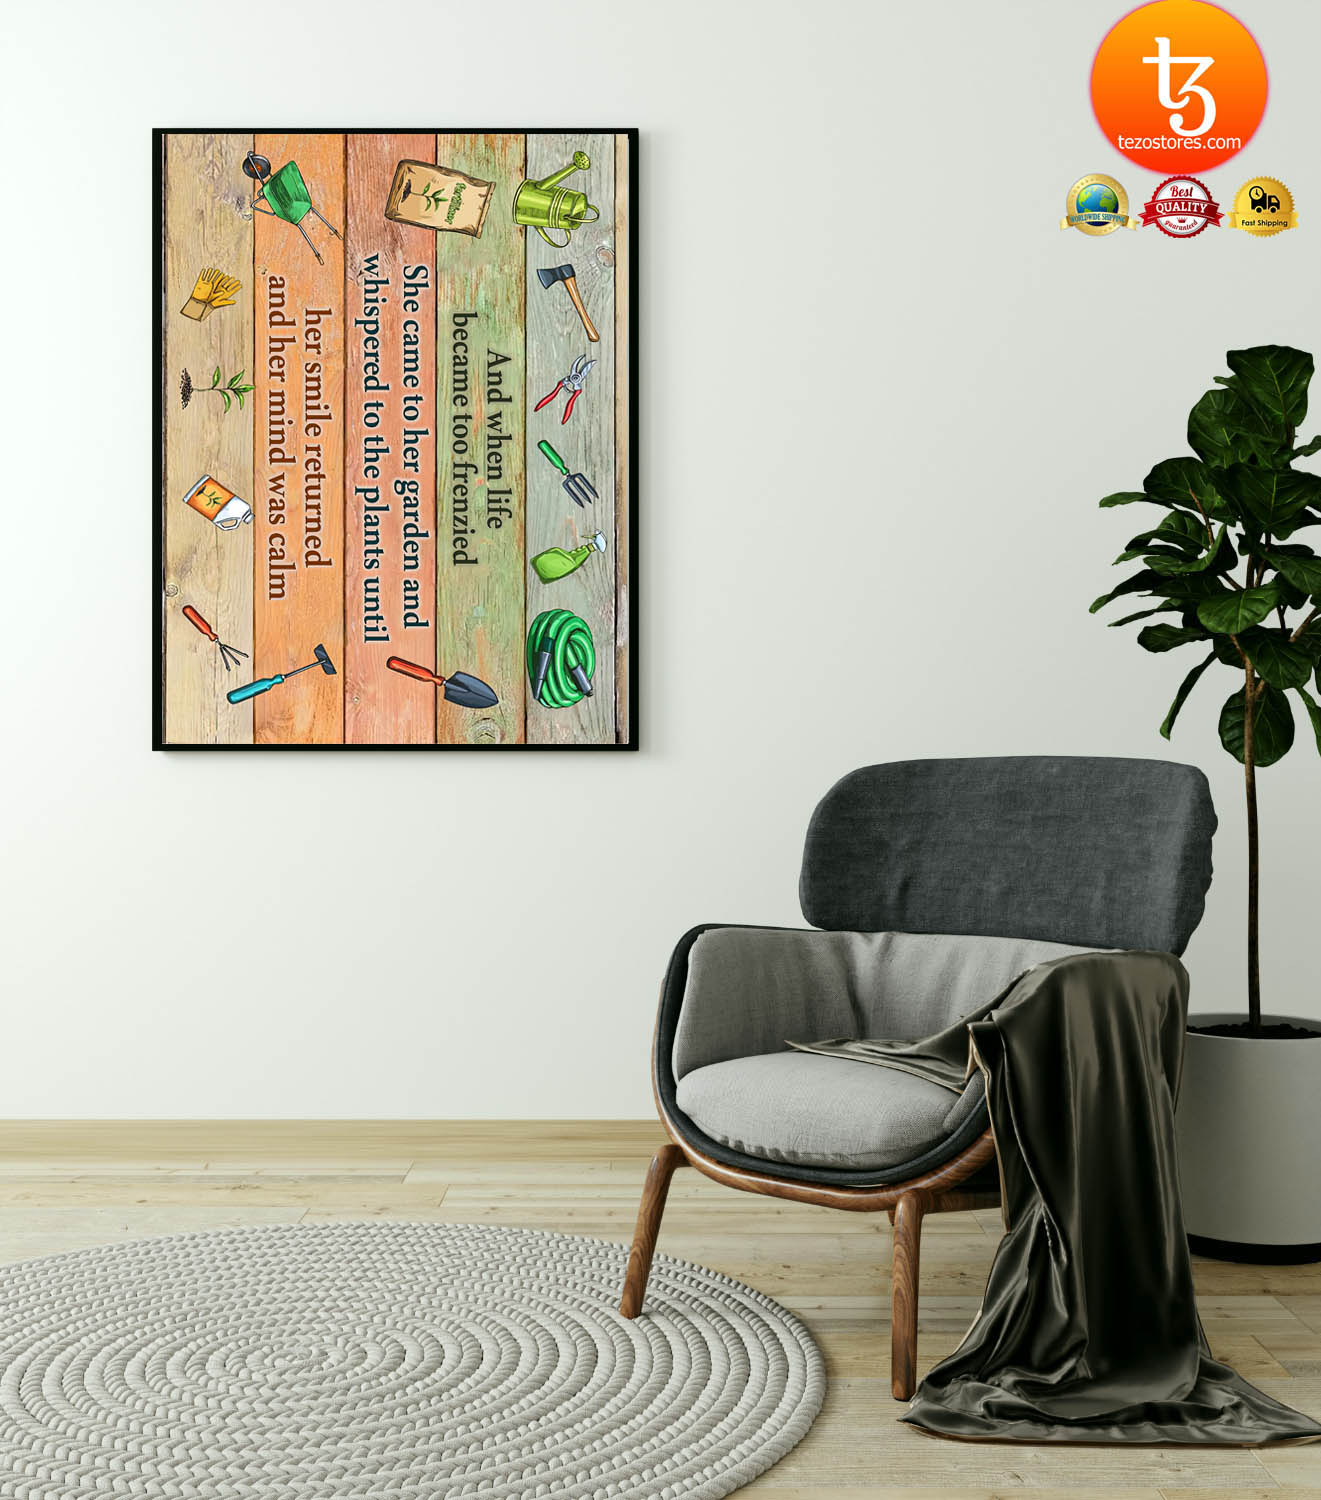 Garden And when life became too frenzied poster 21